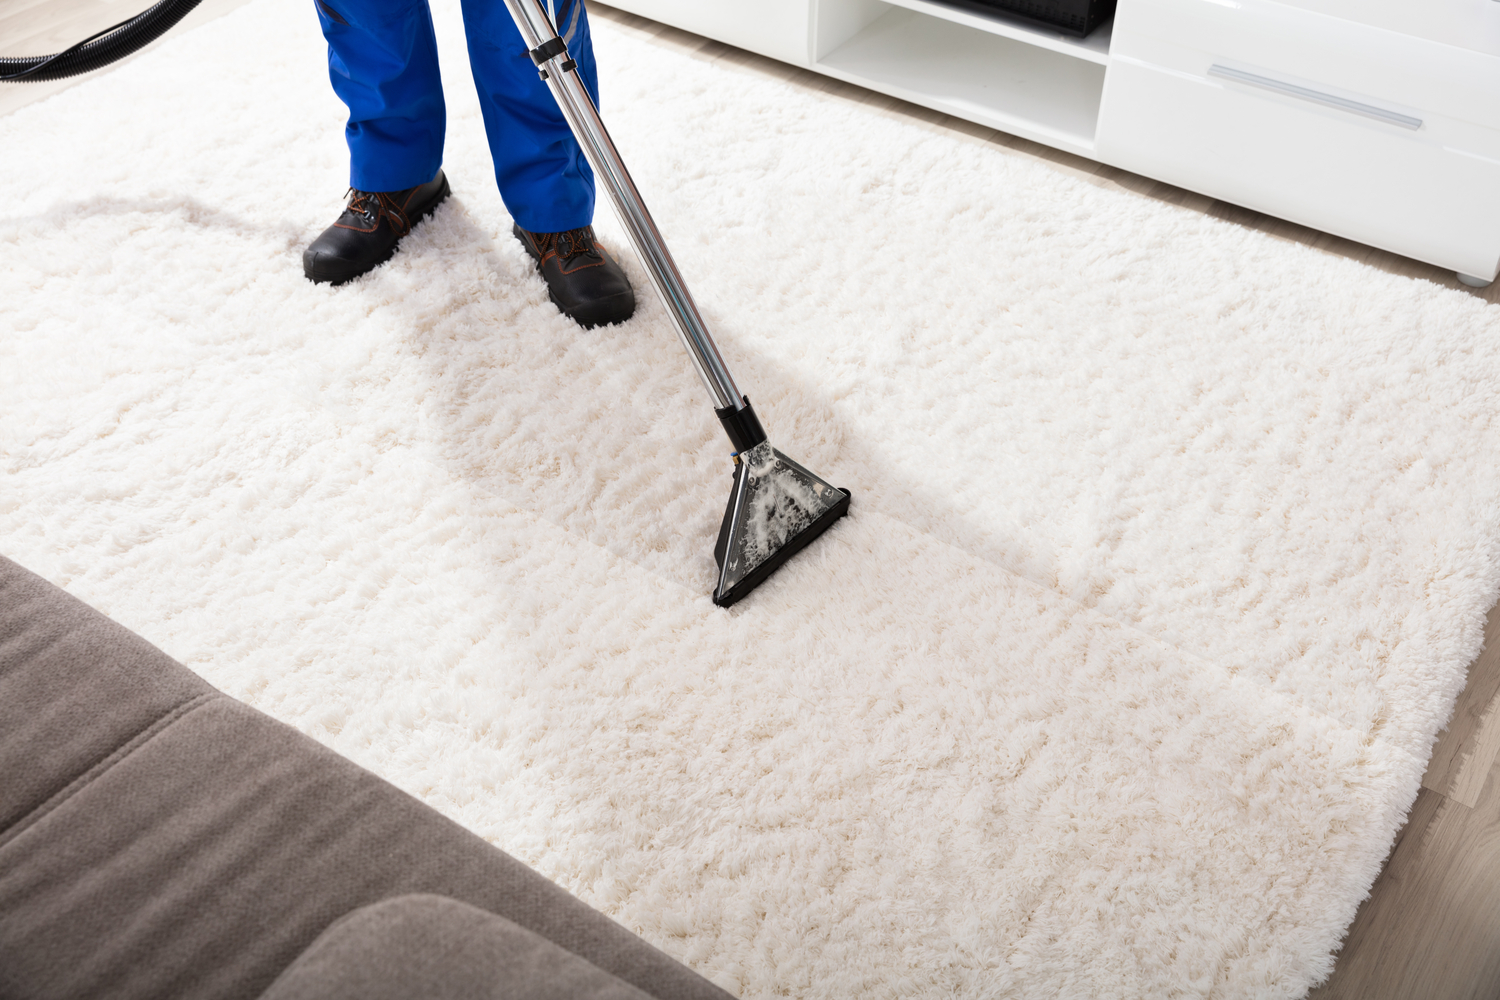 Carpet Cleaning Services by One Minute Dry Time